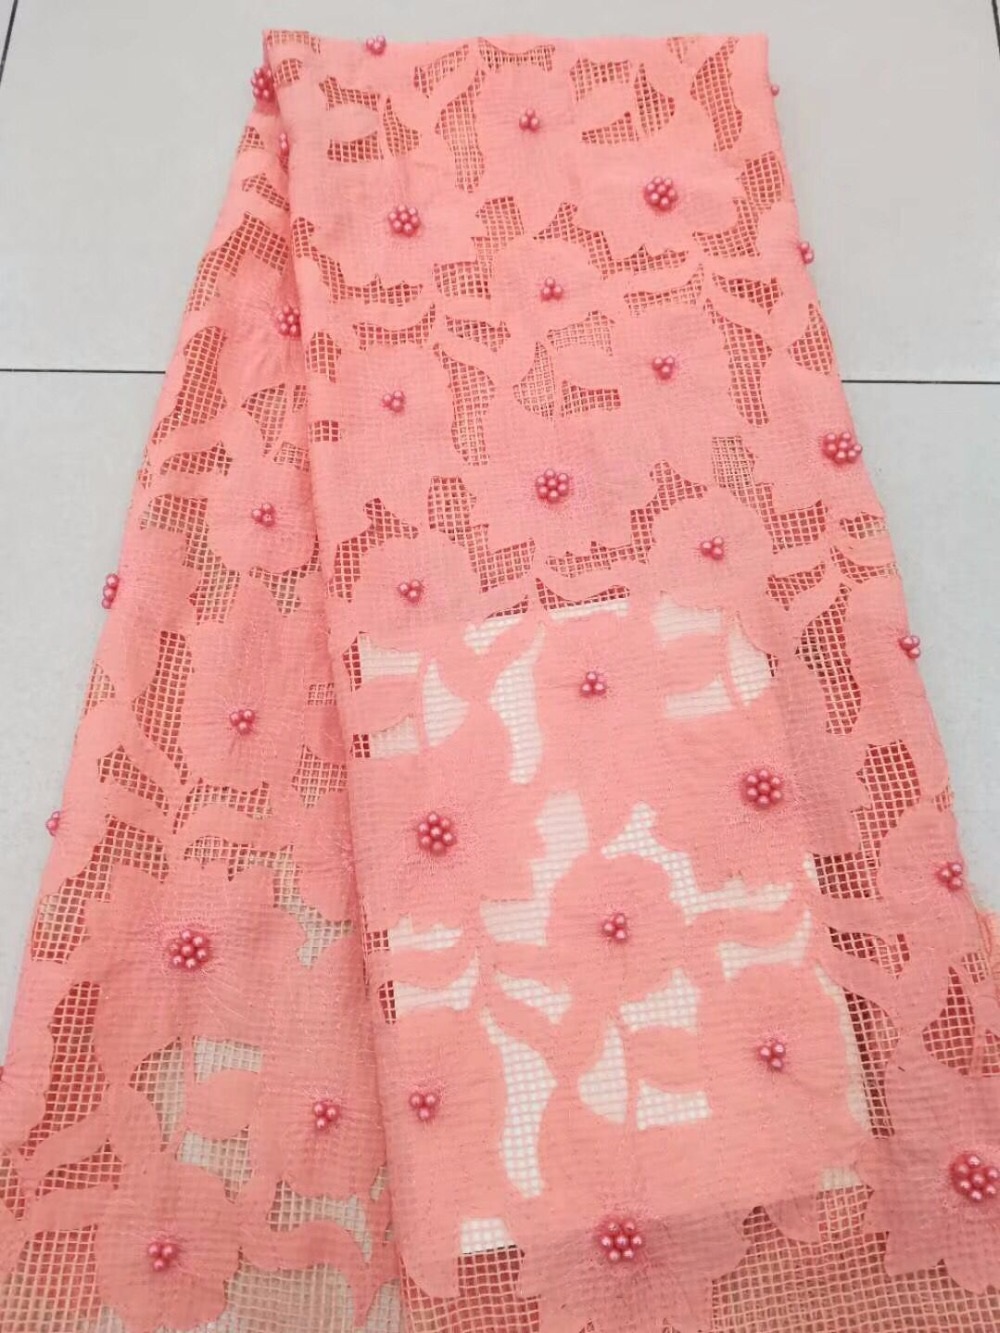 peach african lace fabric 2017 high quality lace beaded fabric mesh fabric  for wedding dresses 5yard lot DPF -in Lace from Home   Garden on  Aliexpress.com ... 41eee6ff546b